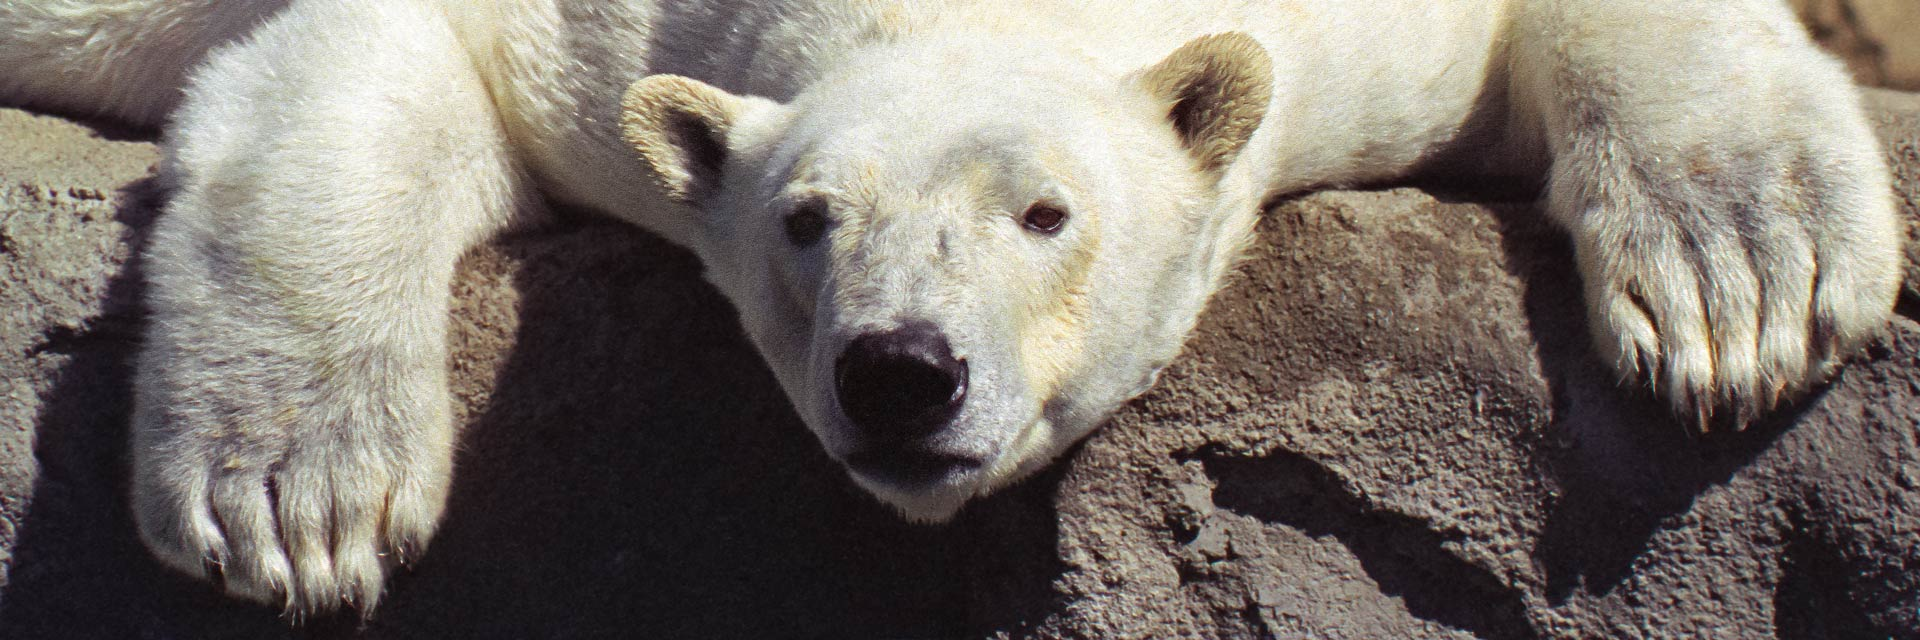 header polar bear denver zoo 94060119p